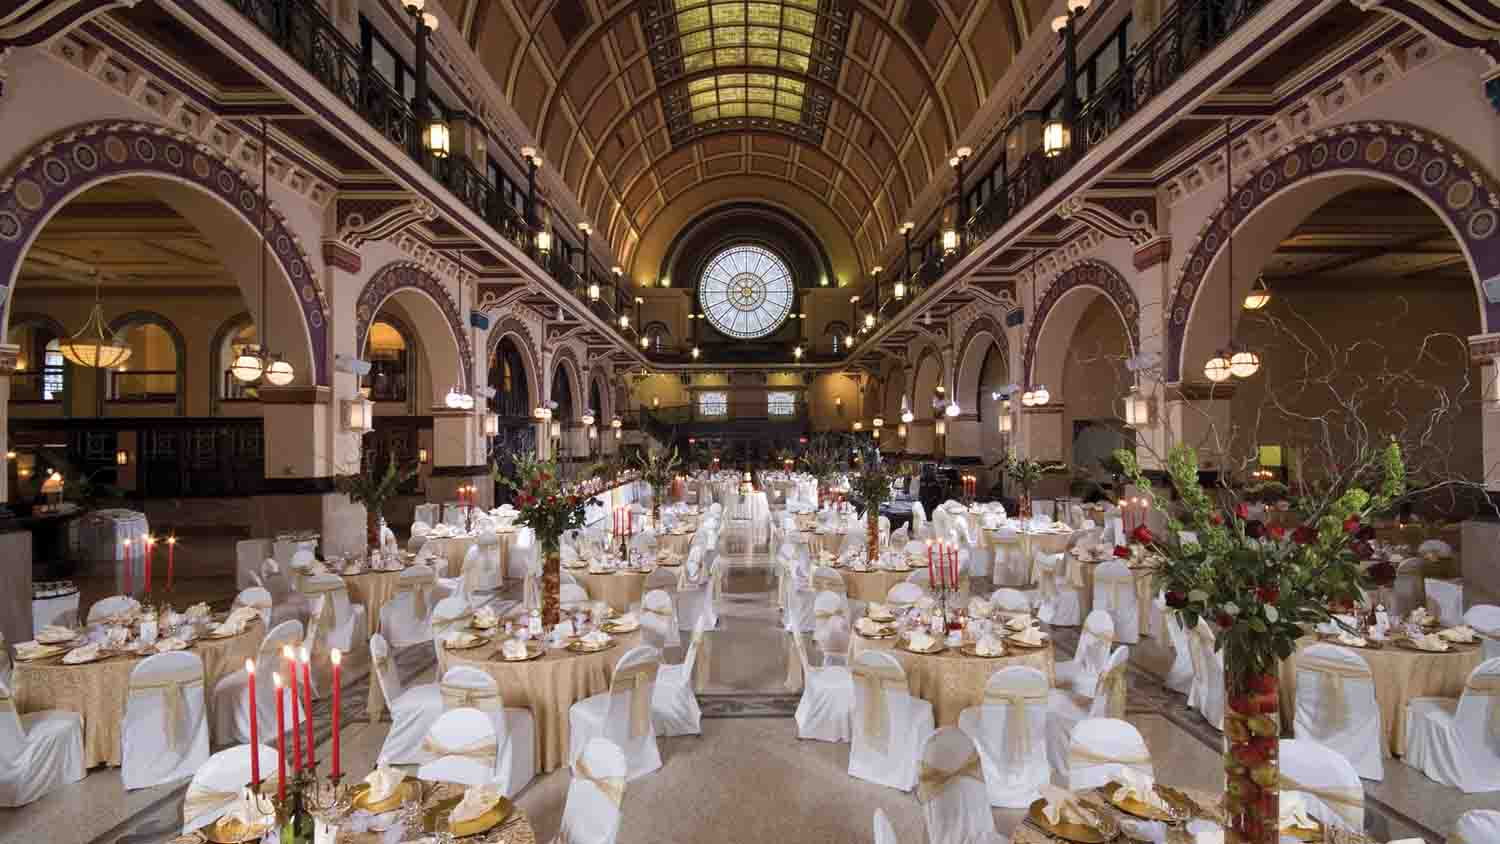 Grand Hall at Historic Union Station